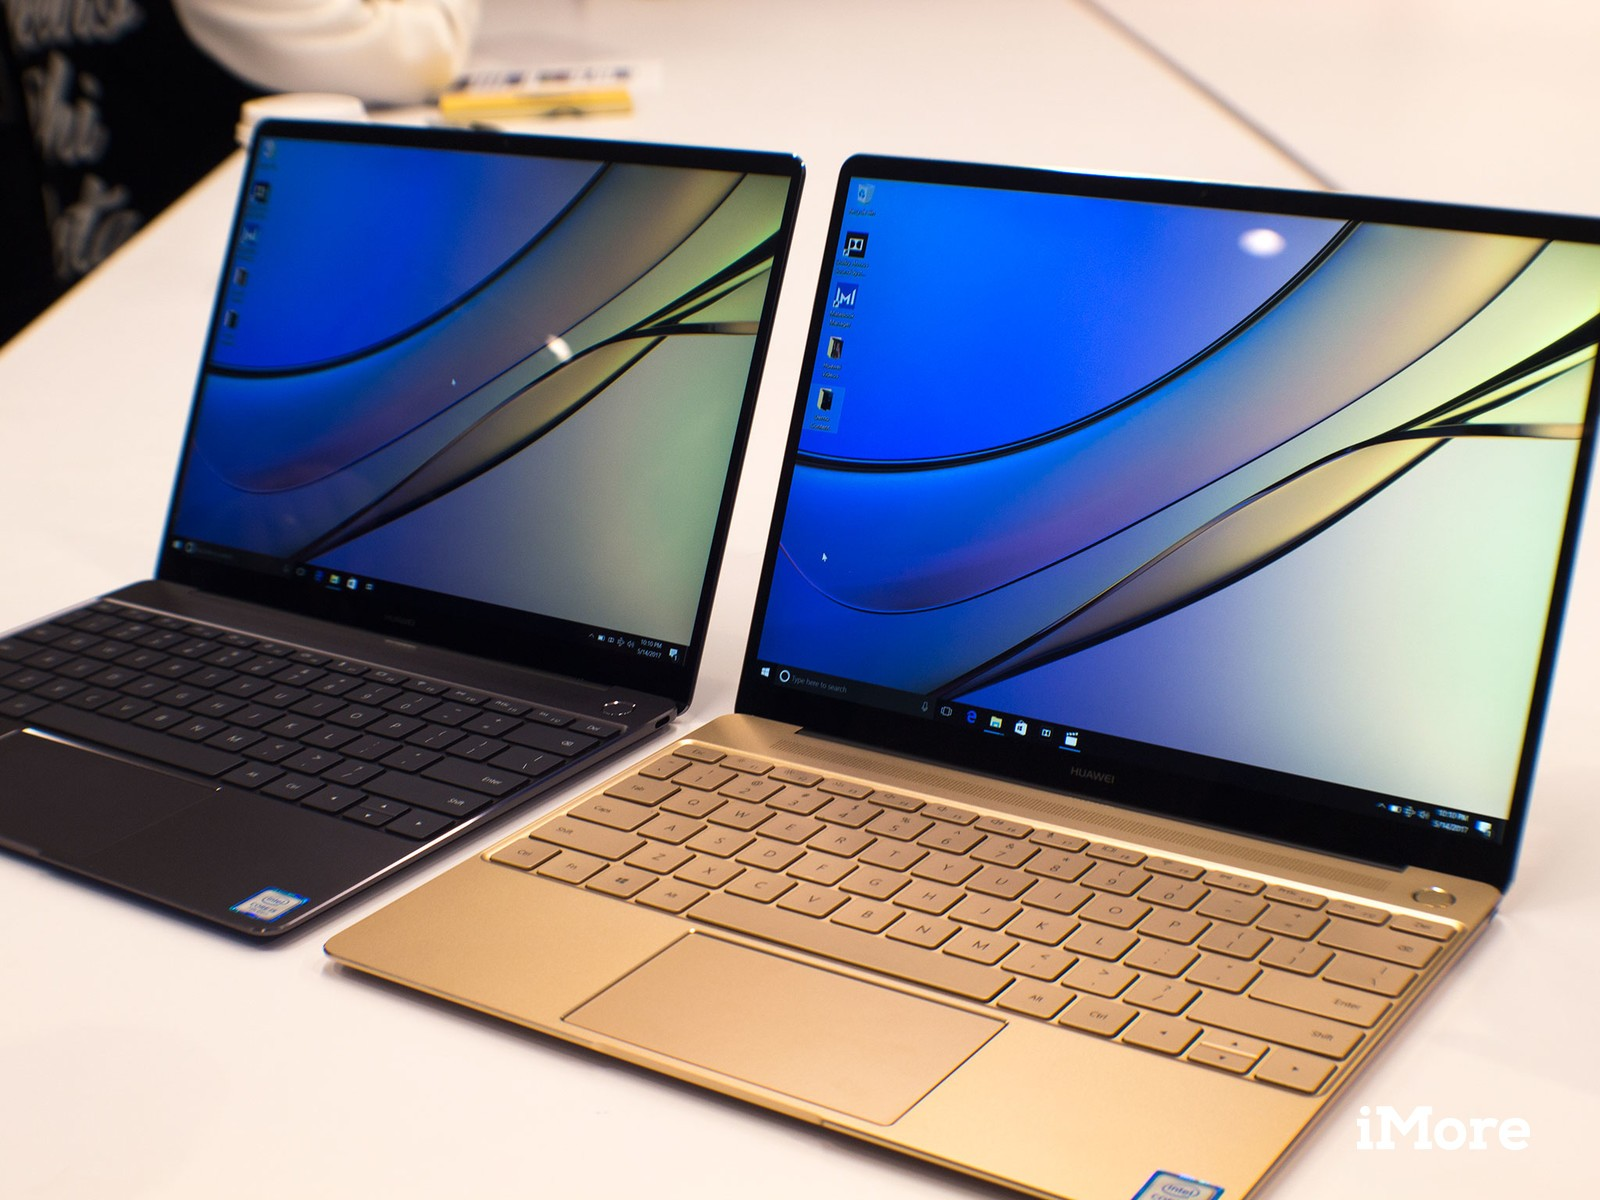 Huawei Matebook 2017 Hands On Preview Imore